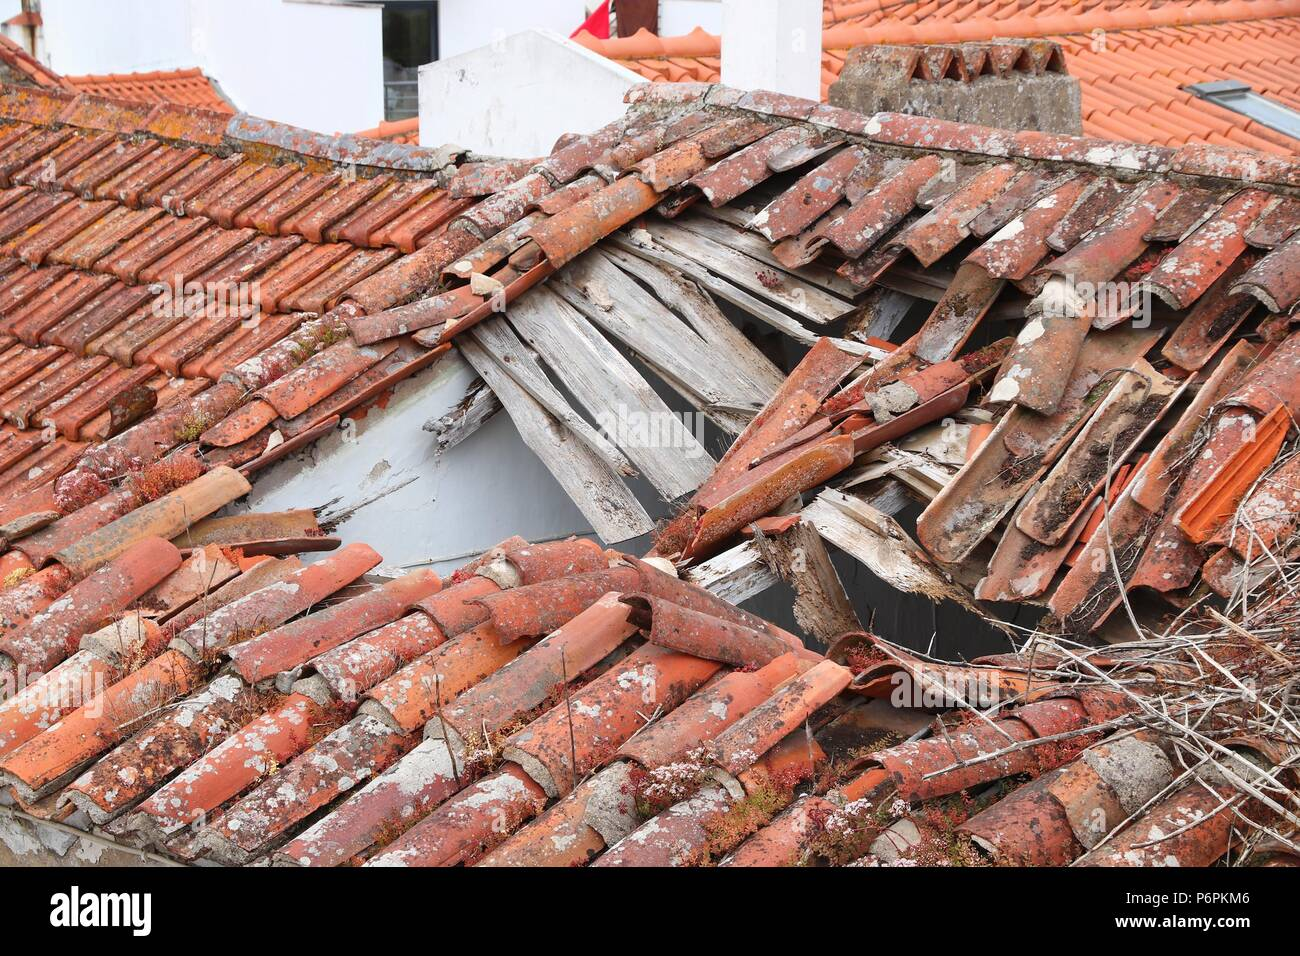 Roof Collapse Stock Photos & Roof Collapse Stock Images - Alamy